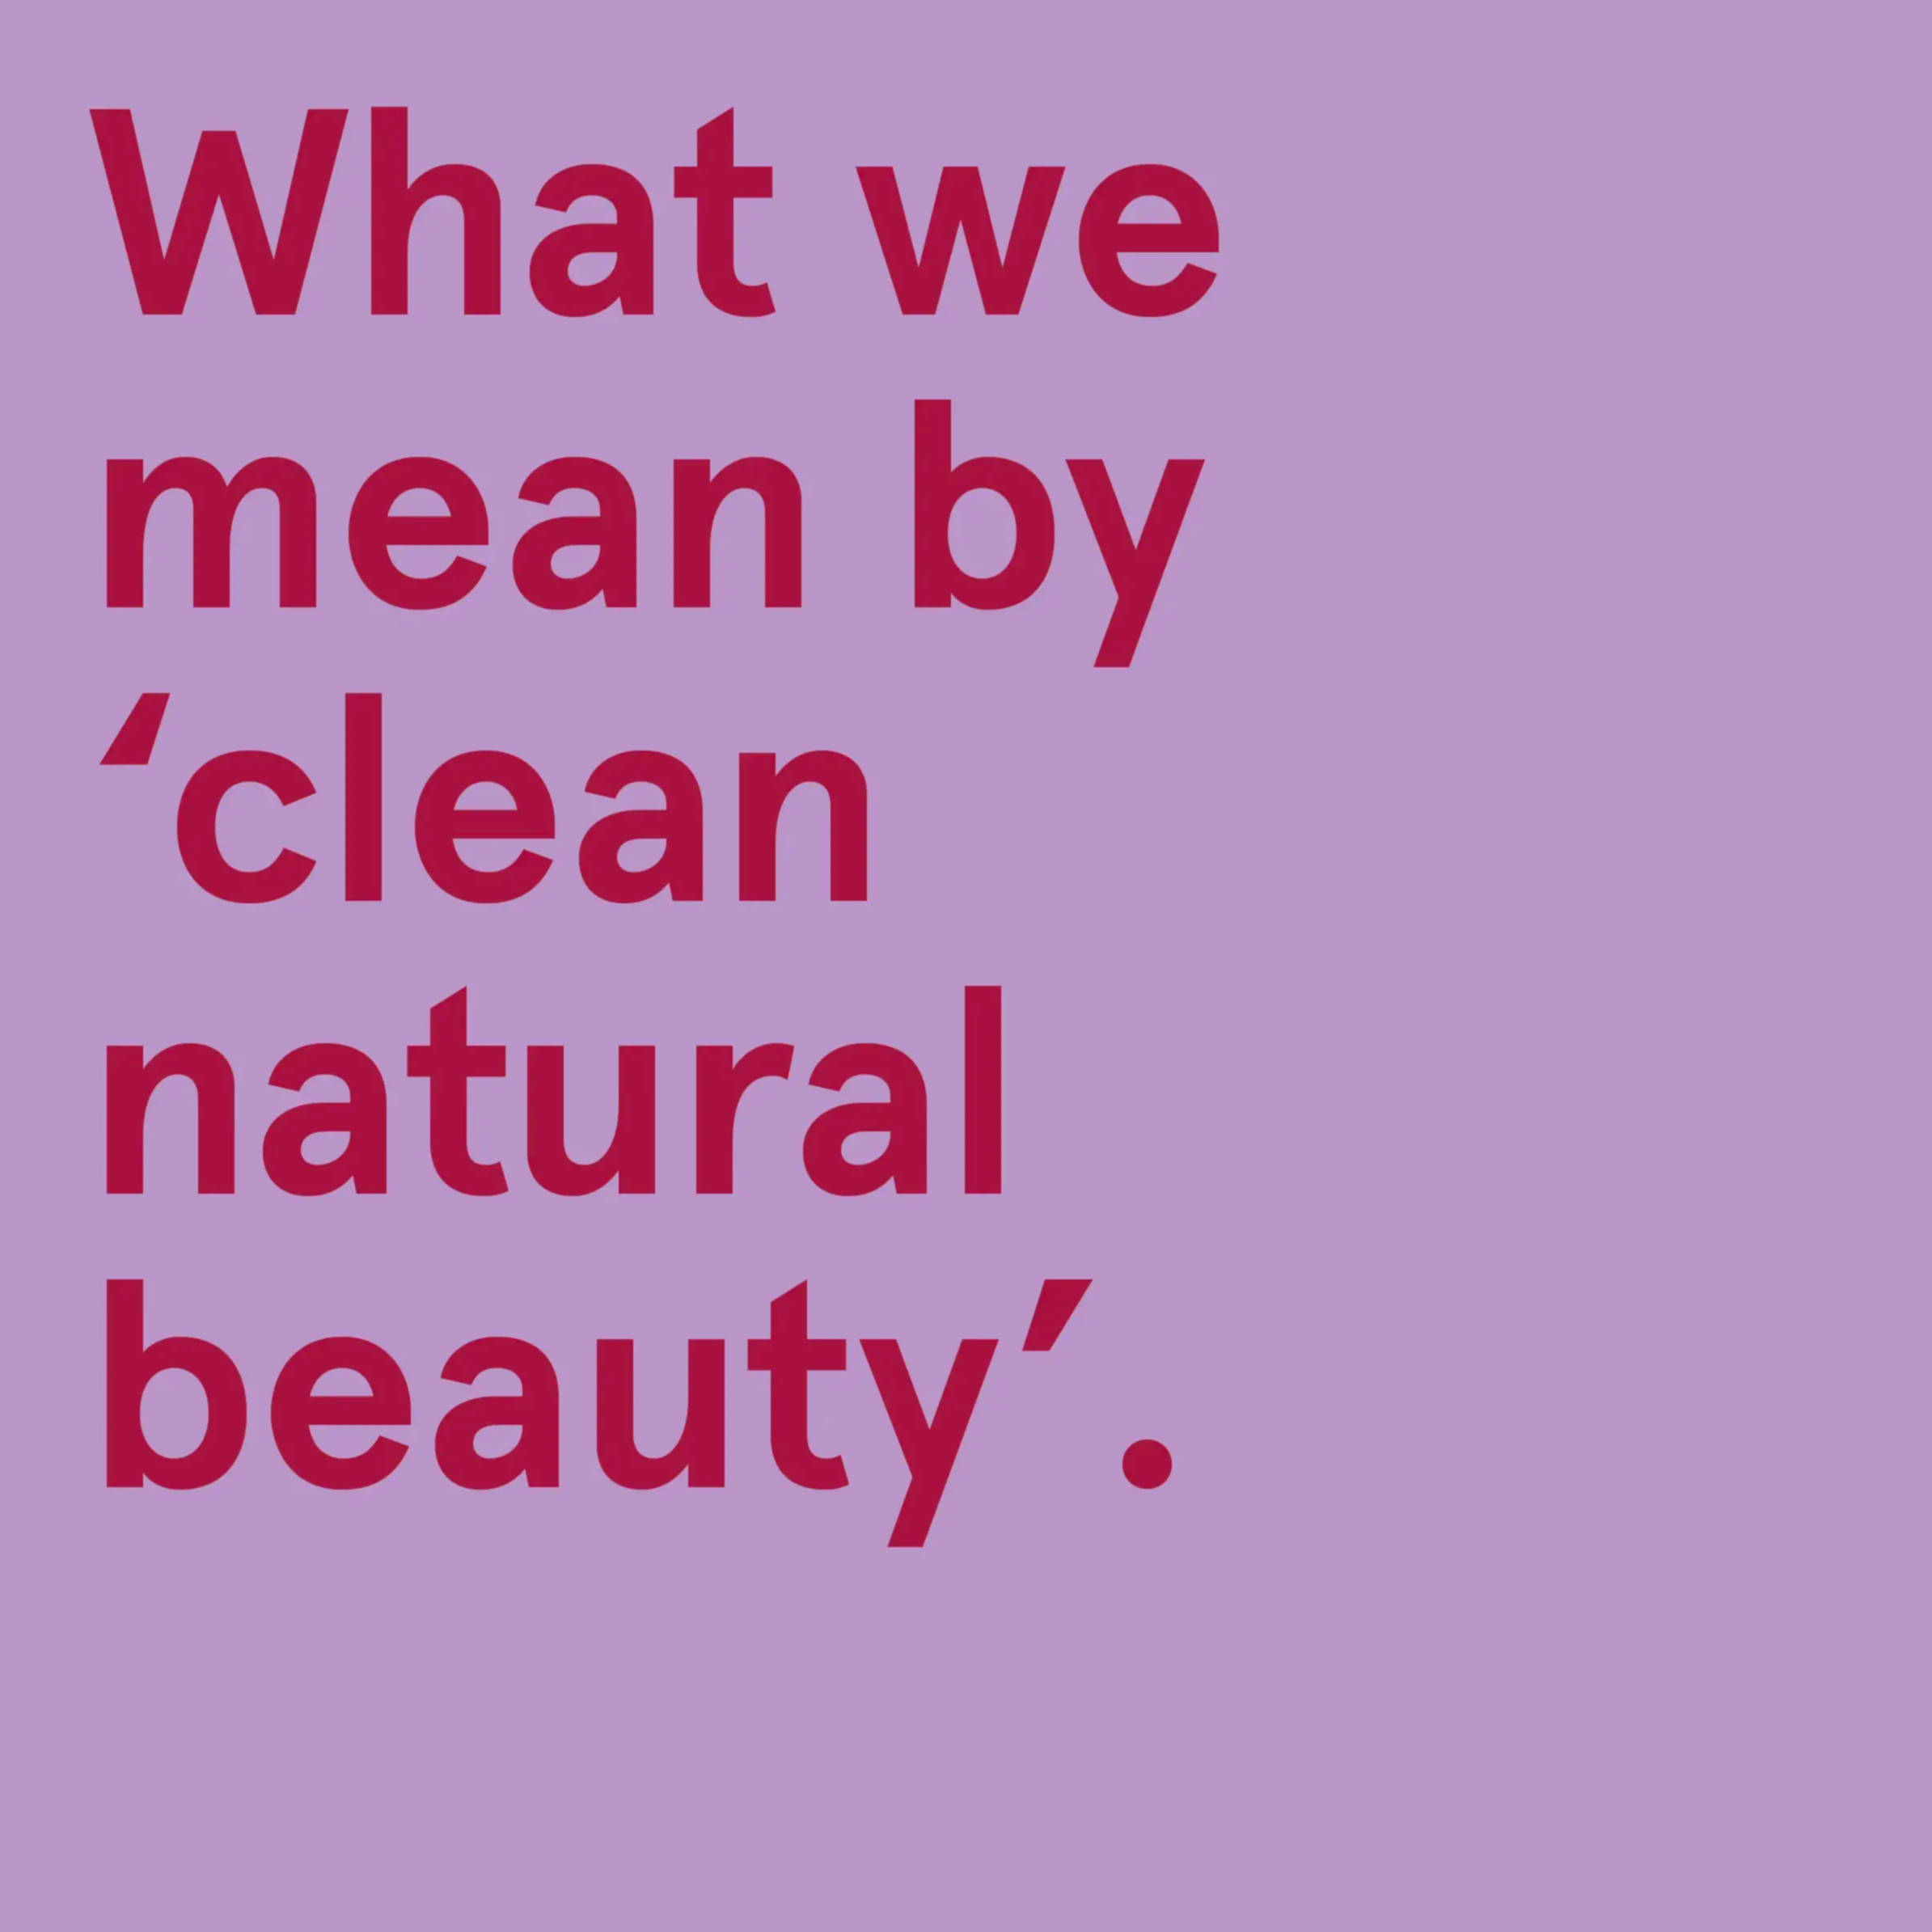 What we mean by 'clean natural beauty'.